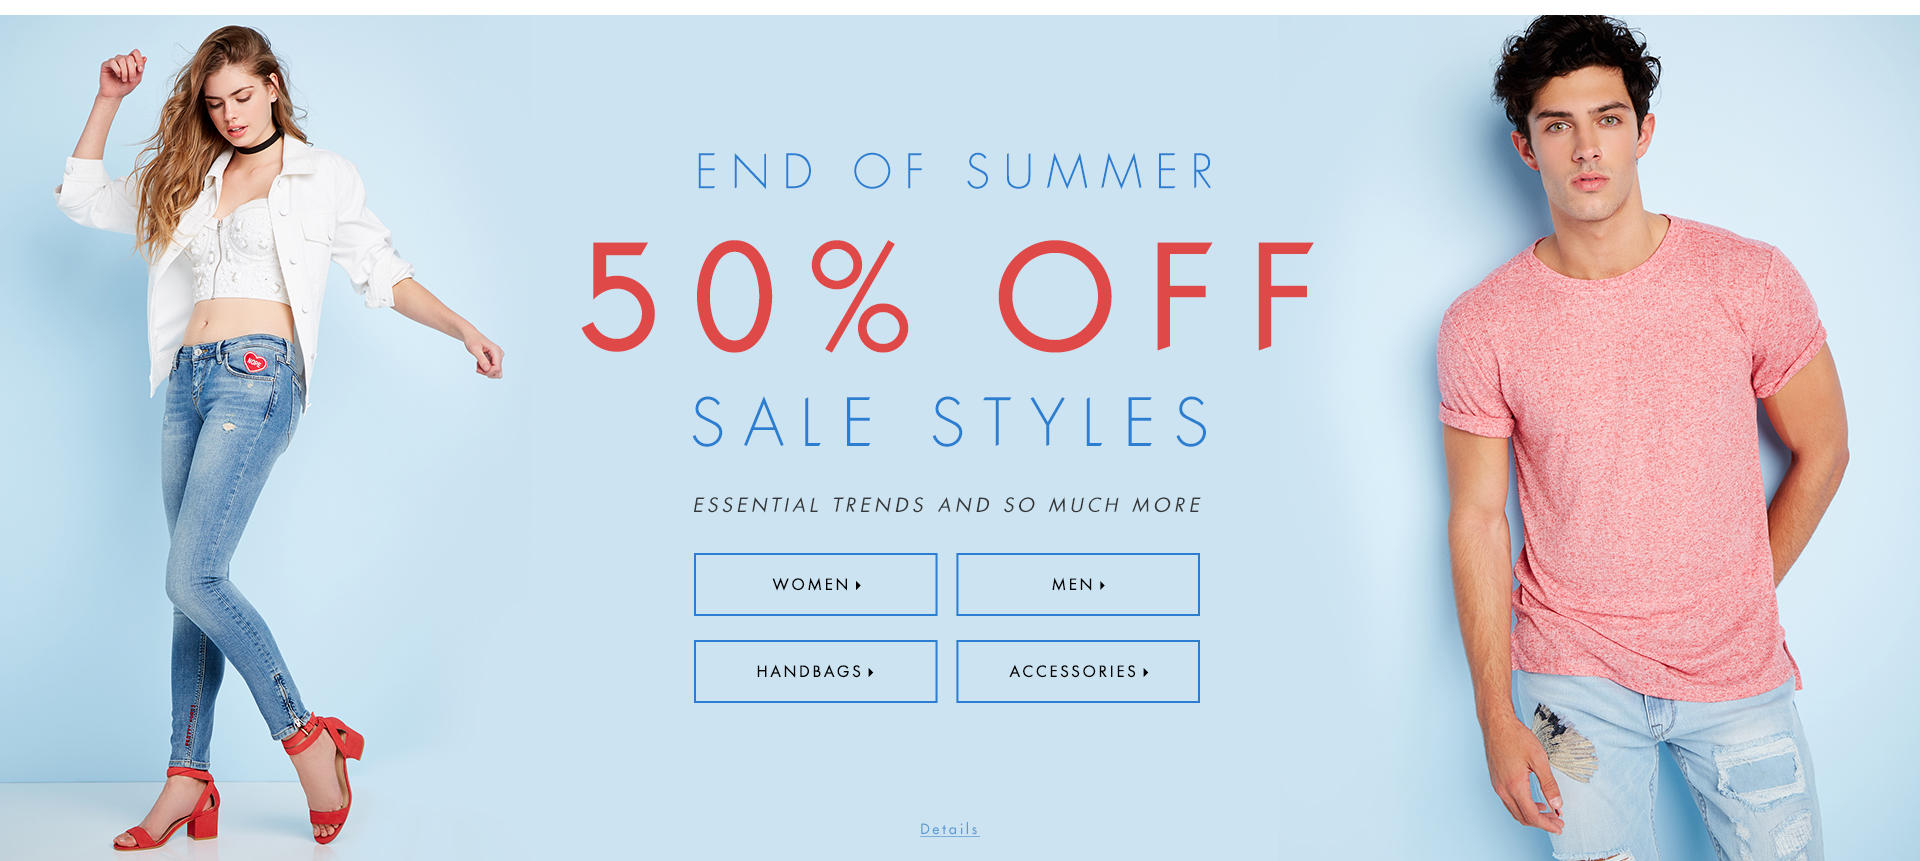 Shop end of summer sale